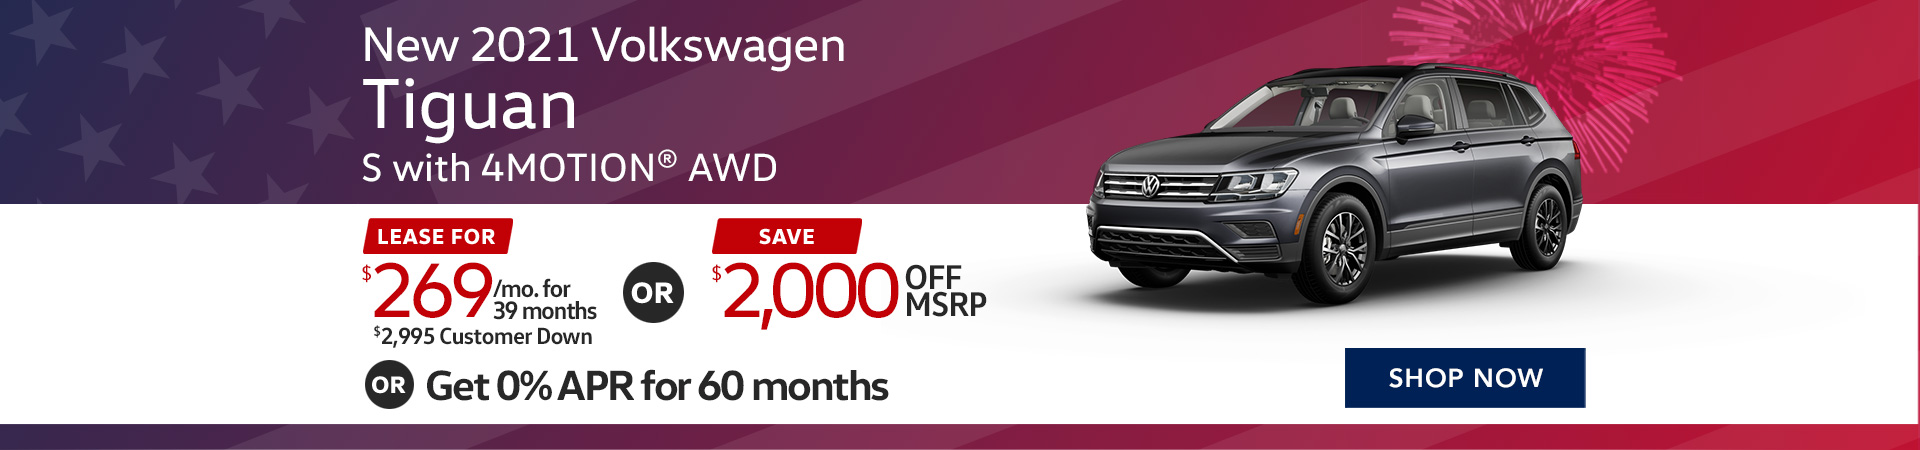 BVW_1920x450_New 2021 Volkswagen Tiguan S with 4MOTION® AWD_02_21